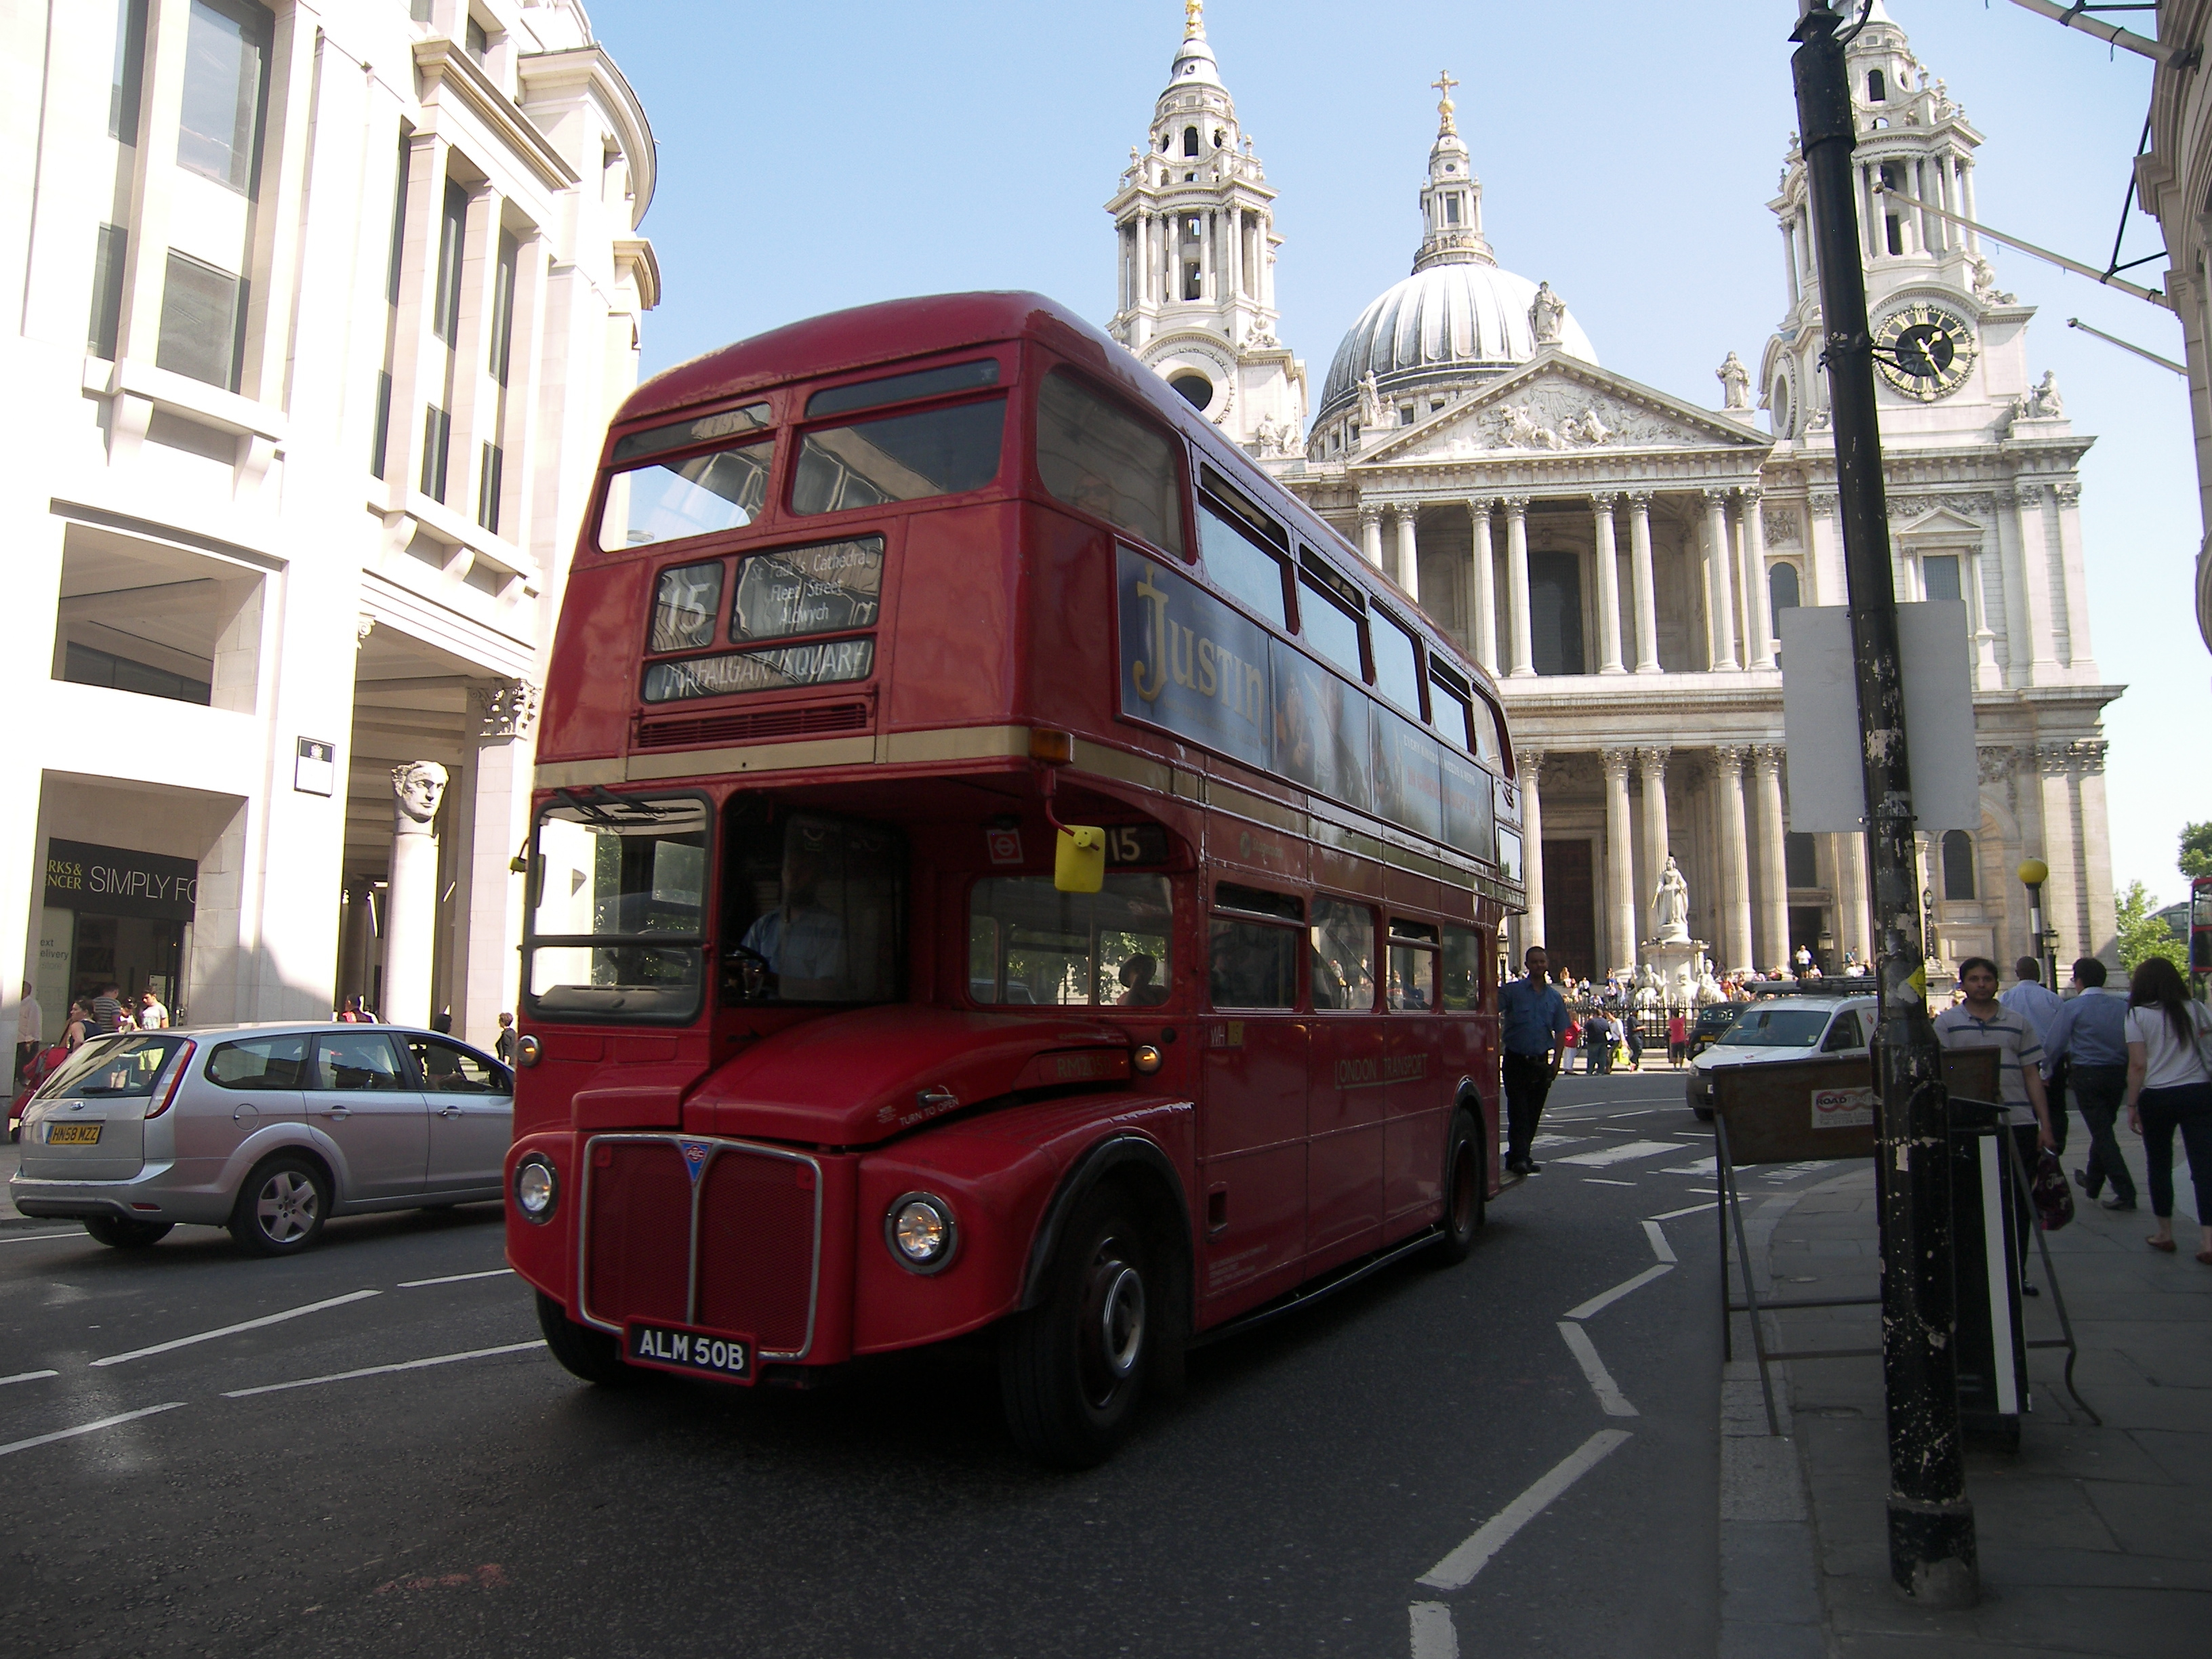 15 Bus to Trafalgar Square